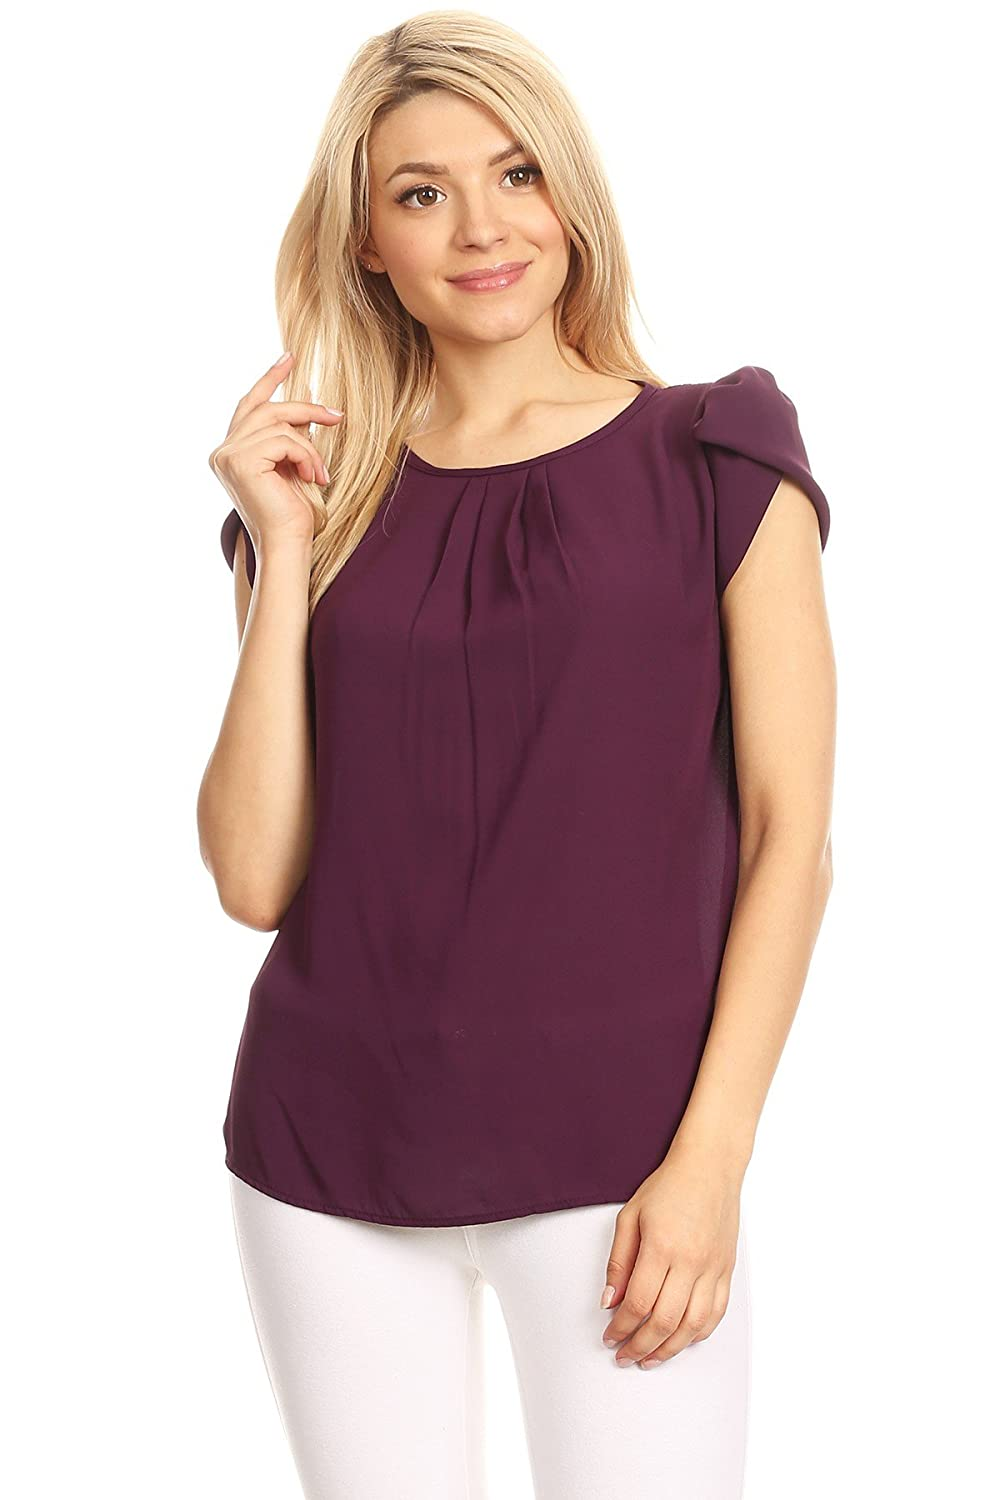 Dark Plum April Apparel Women's Basic TOP